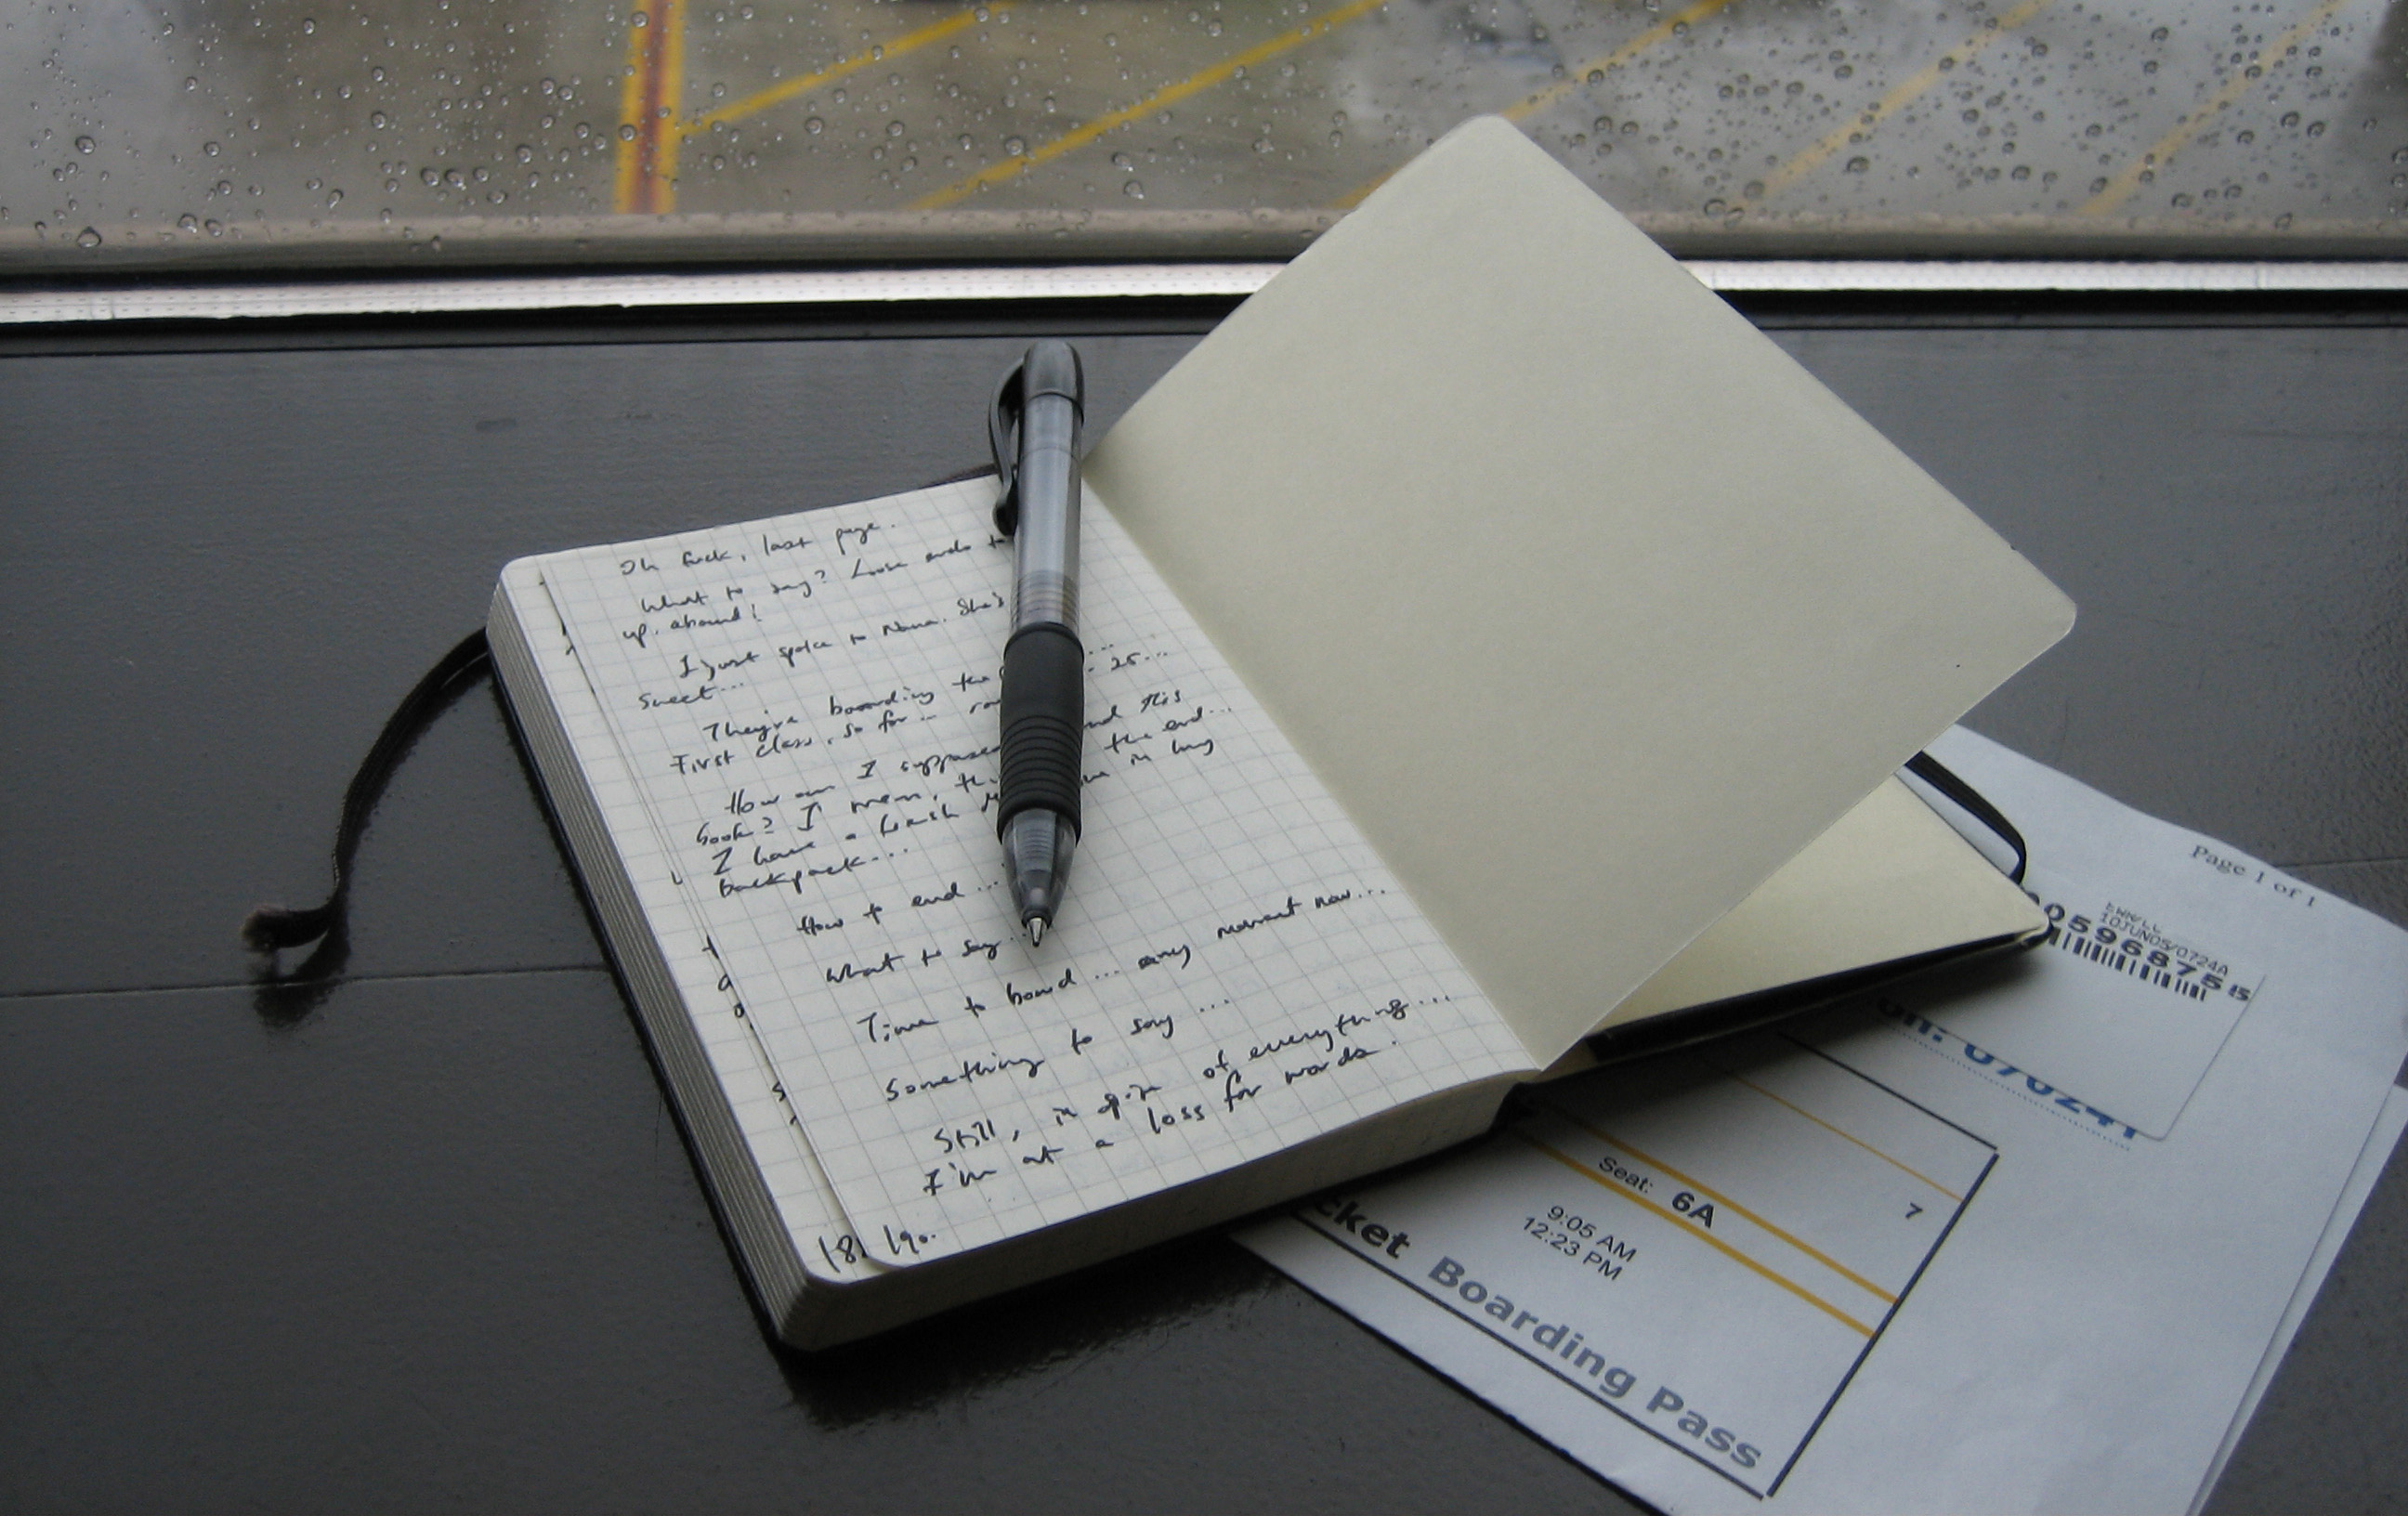 Image of a notebook with a pen on a table near a rainy window